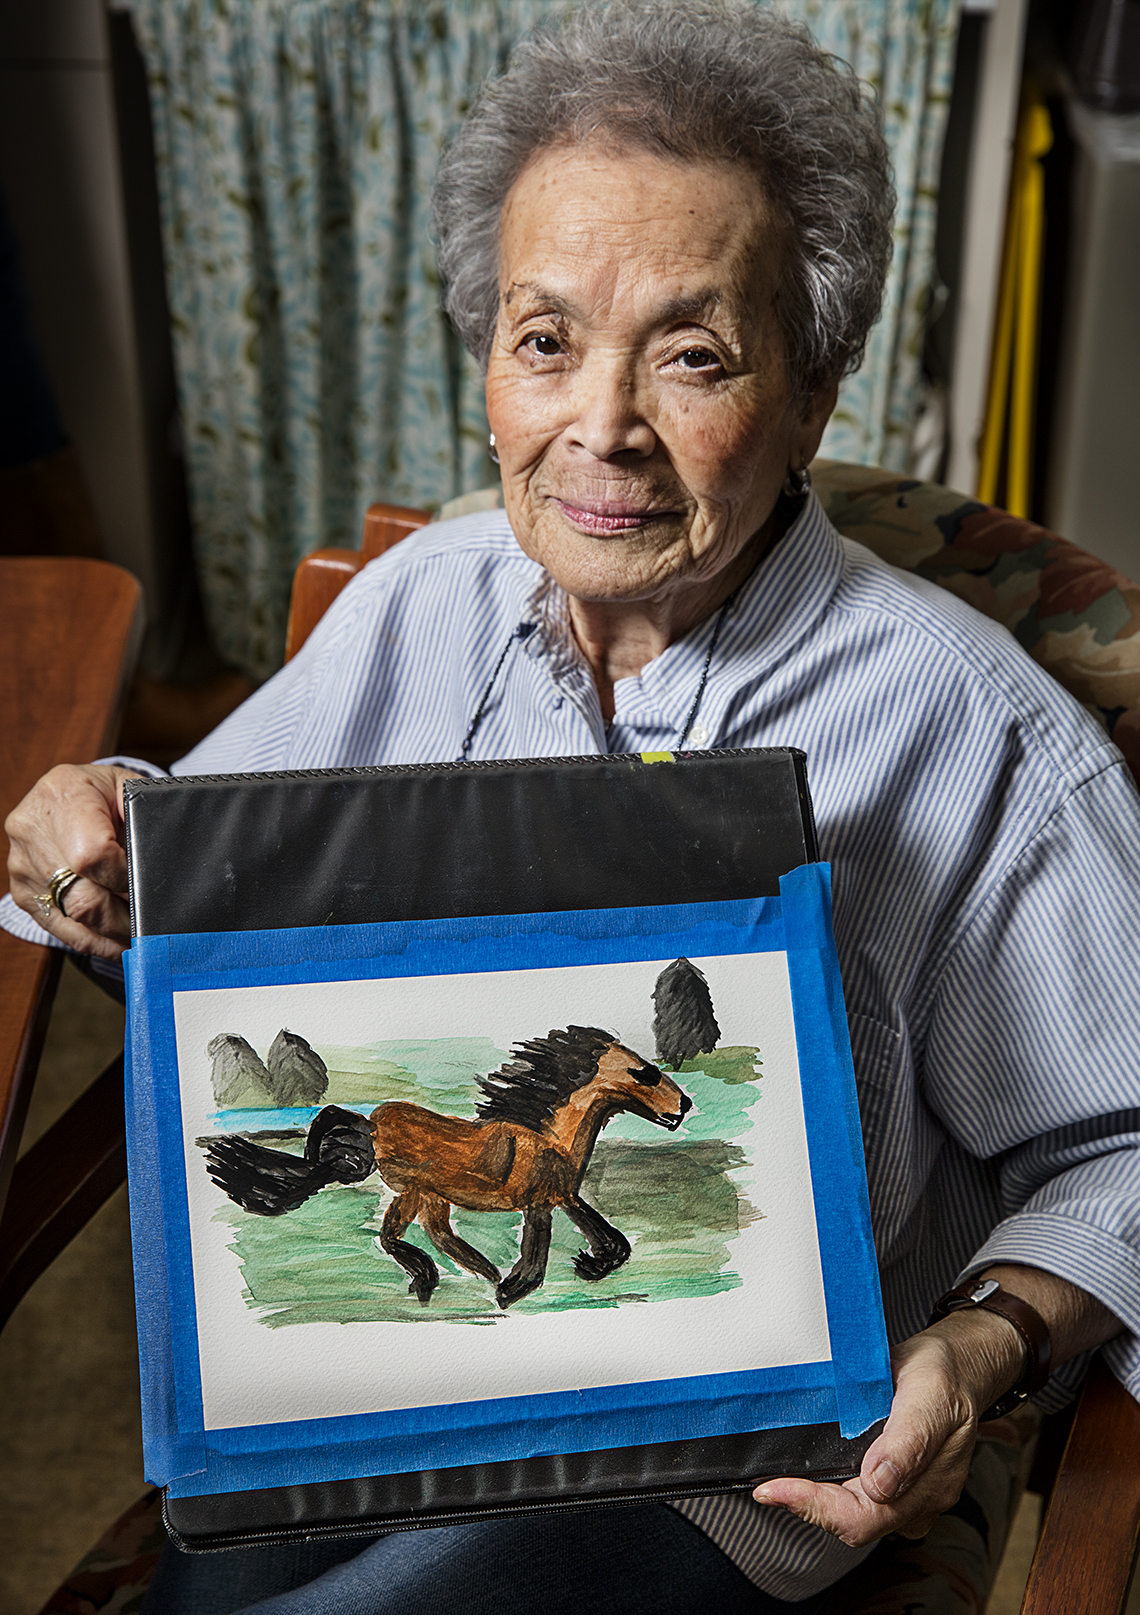 Mature woman holding a painting that she created of a horse.